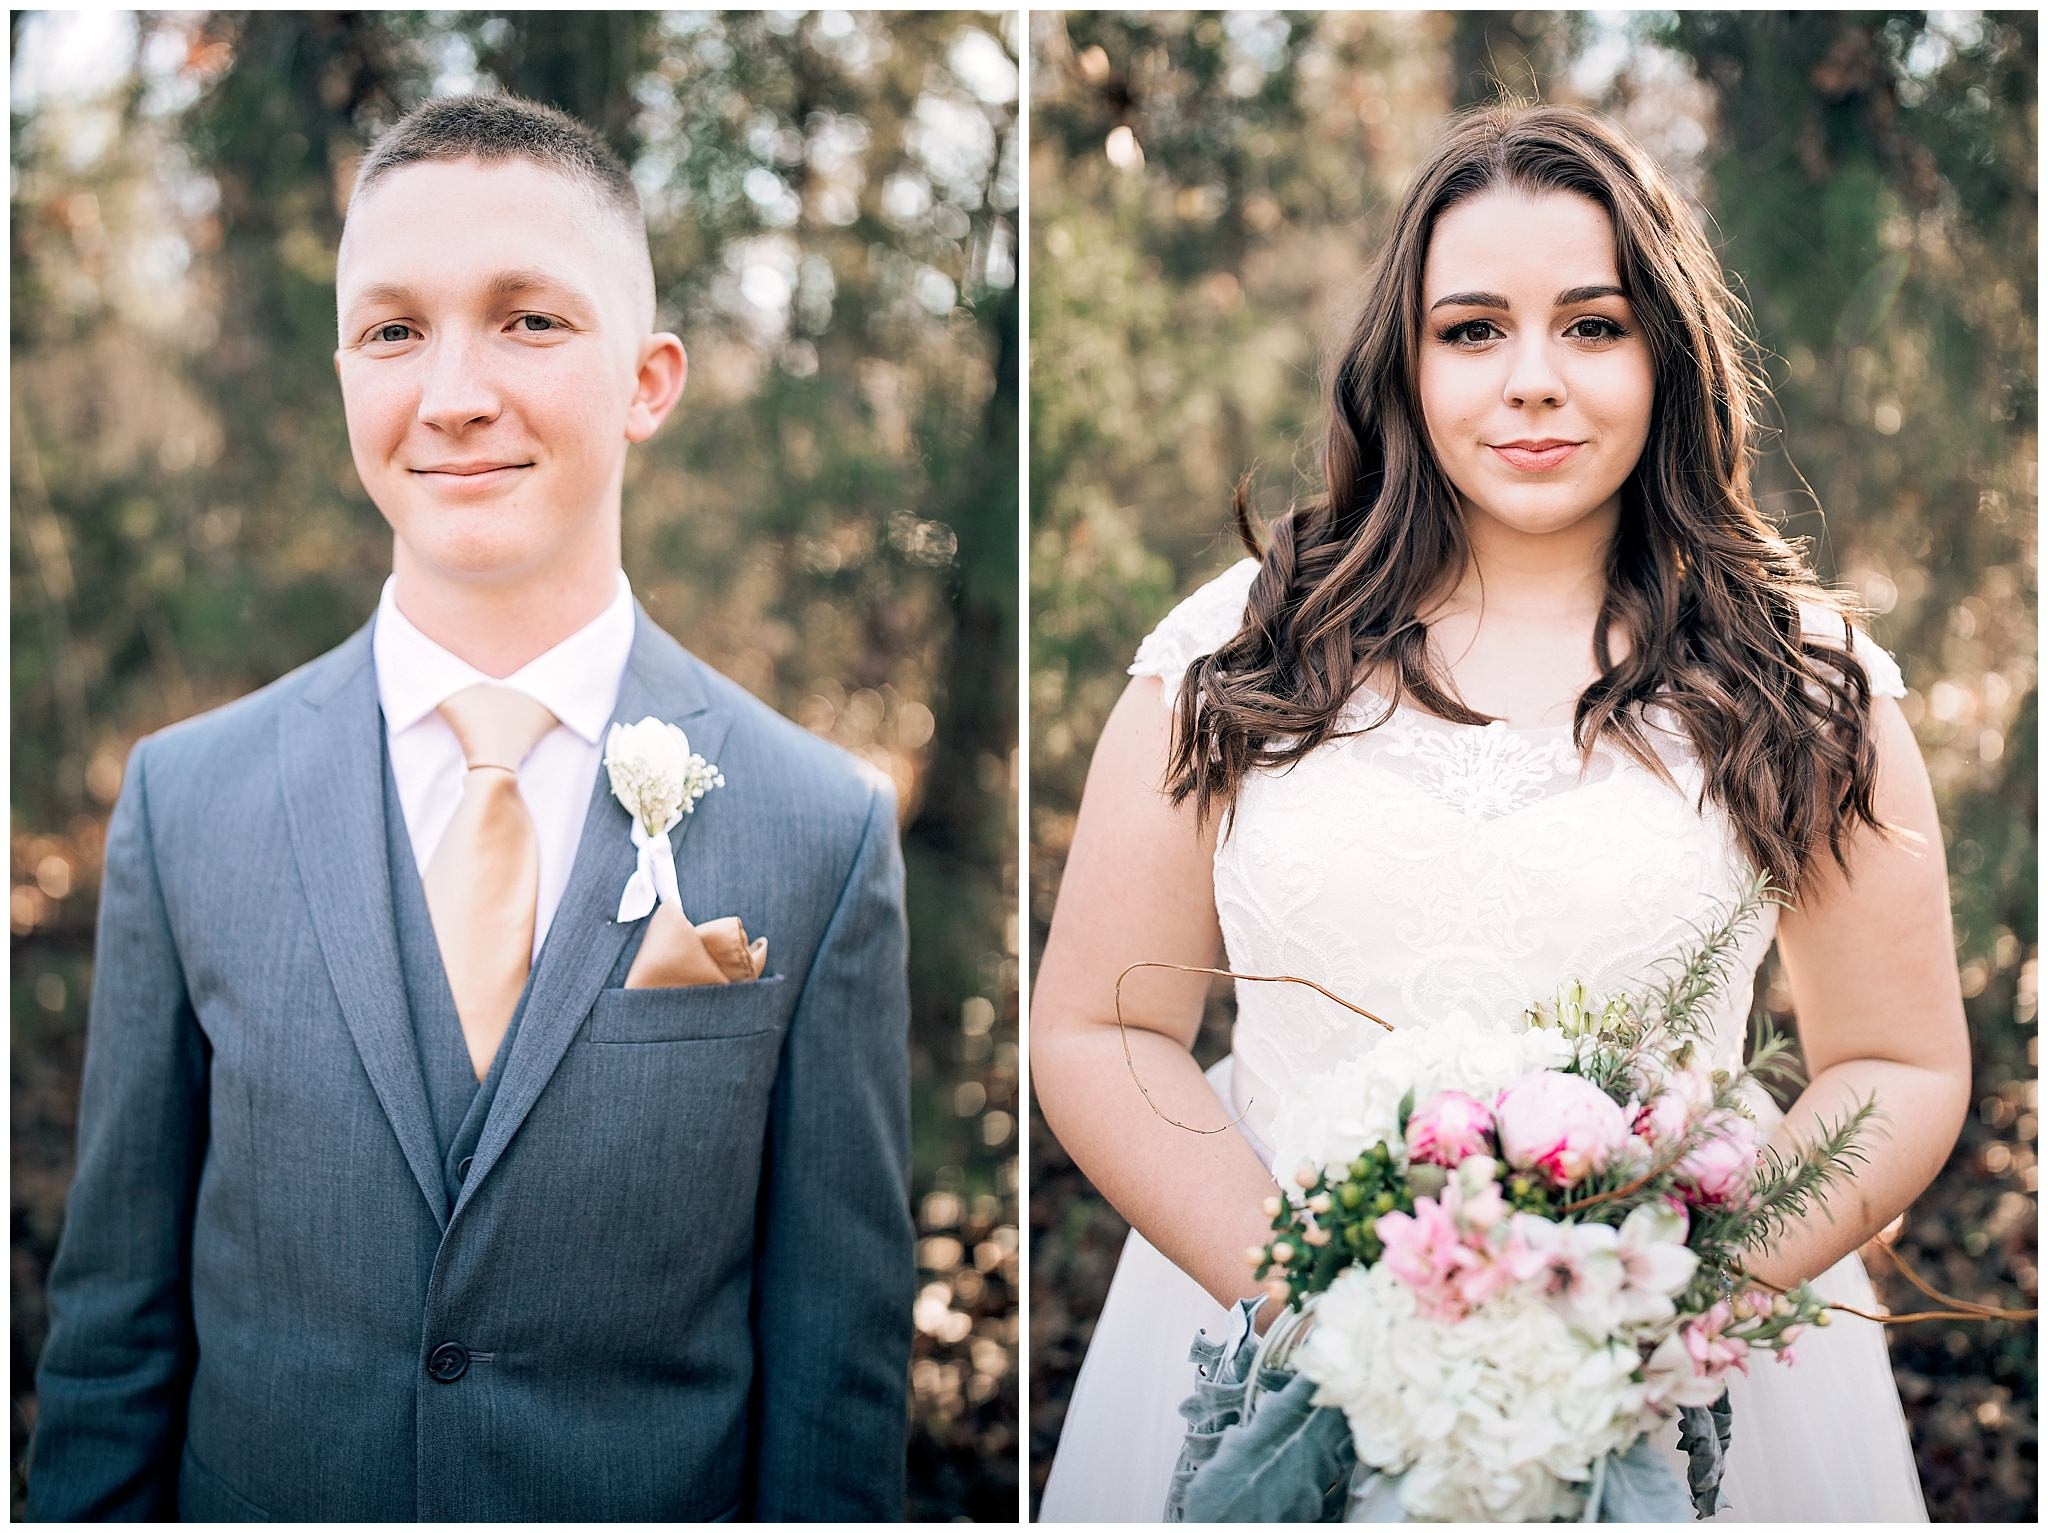 Bride and Groom smiling at the camera for their wedding pictures